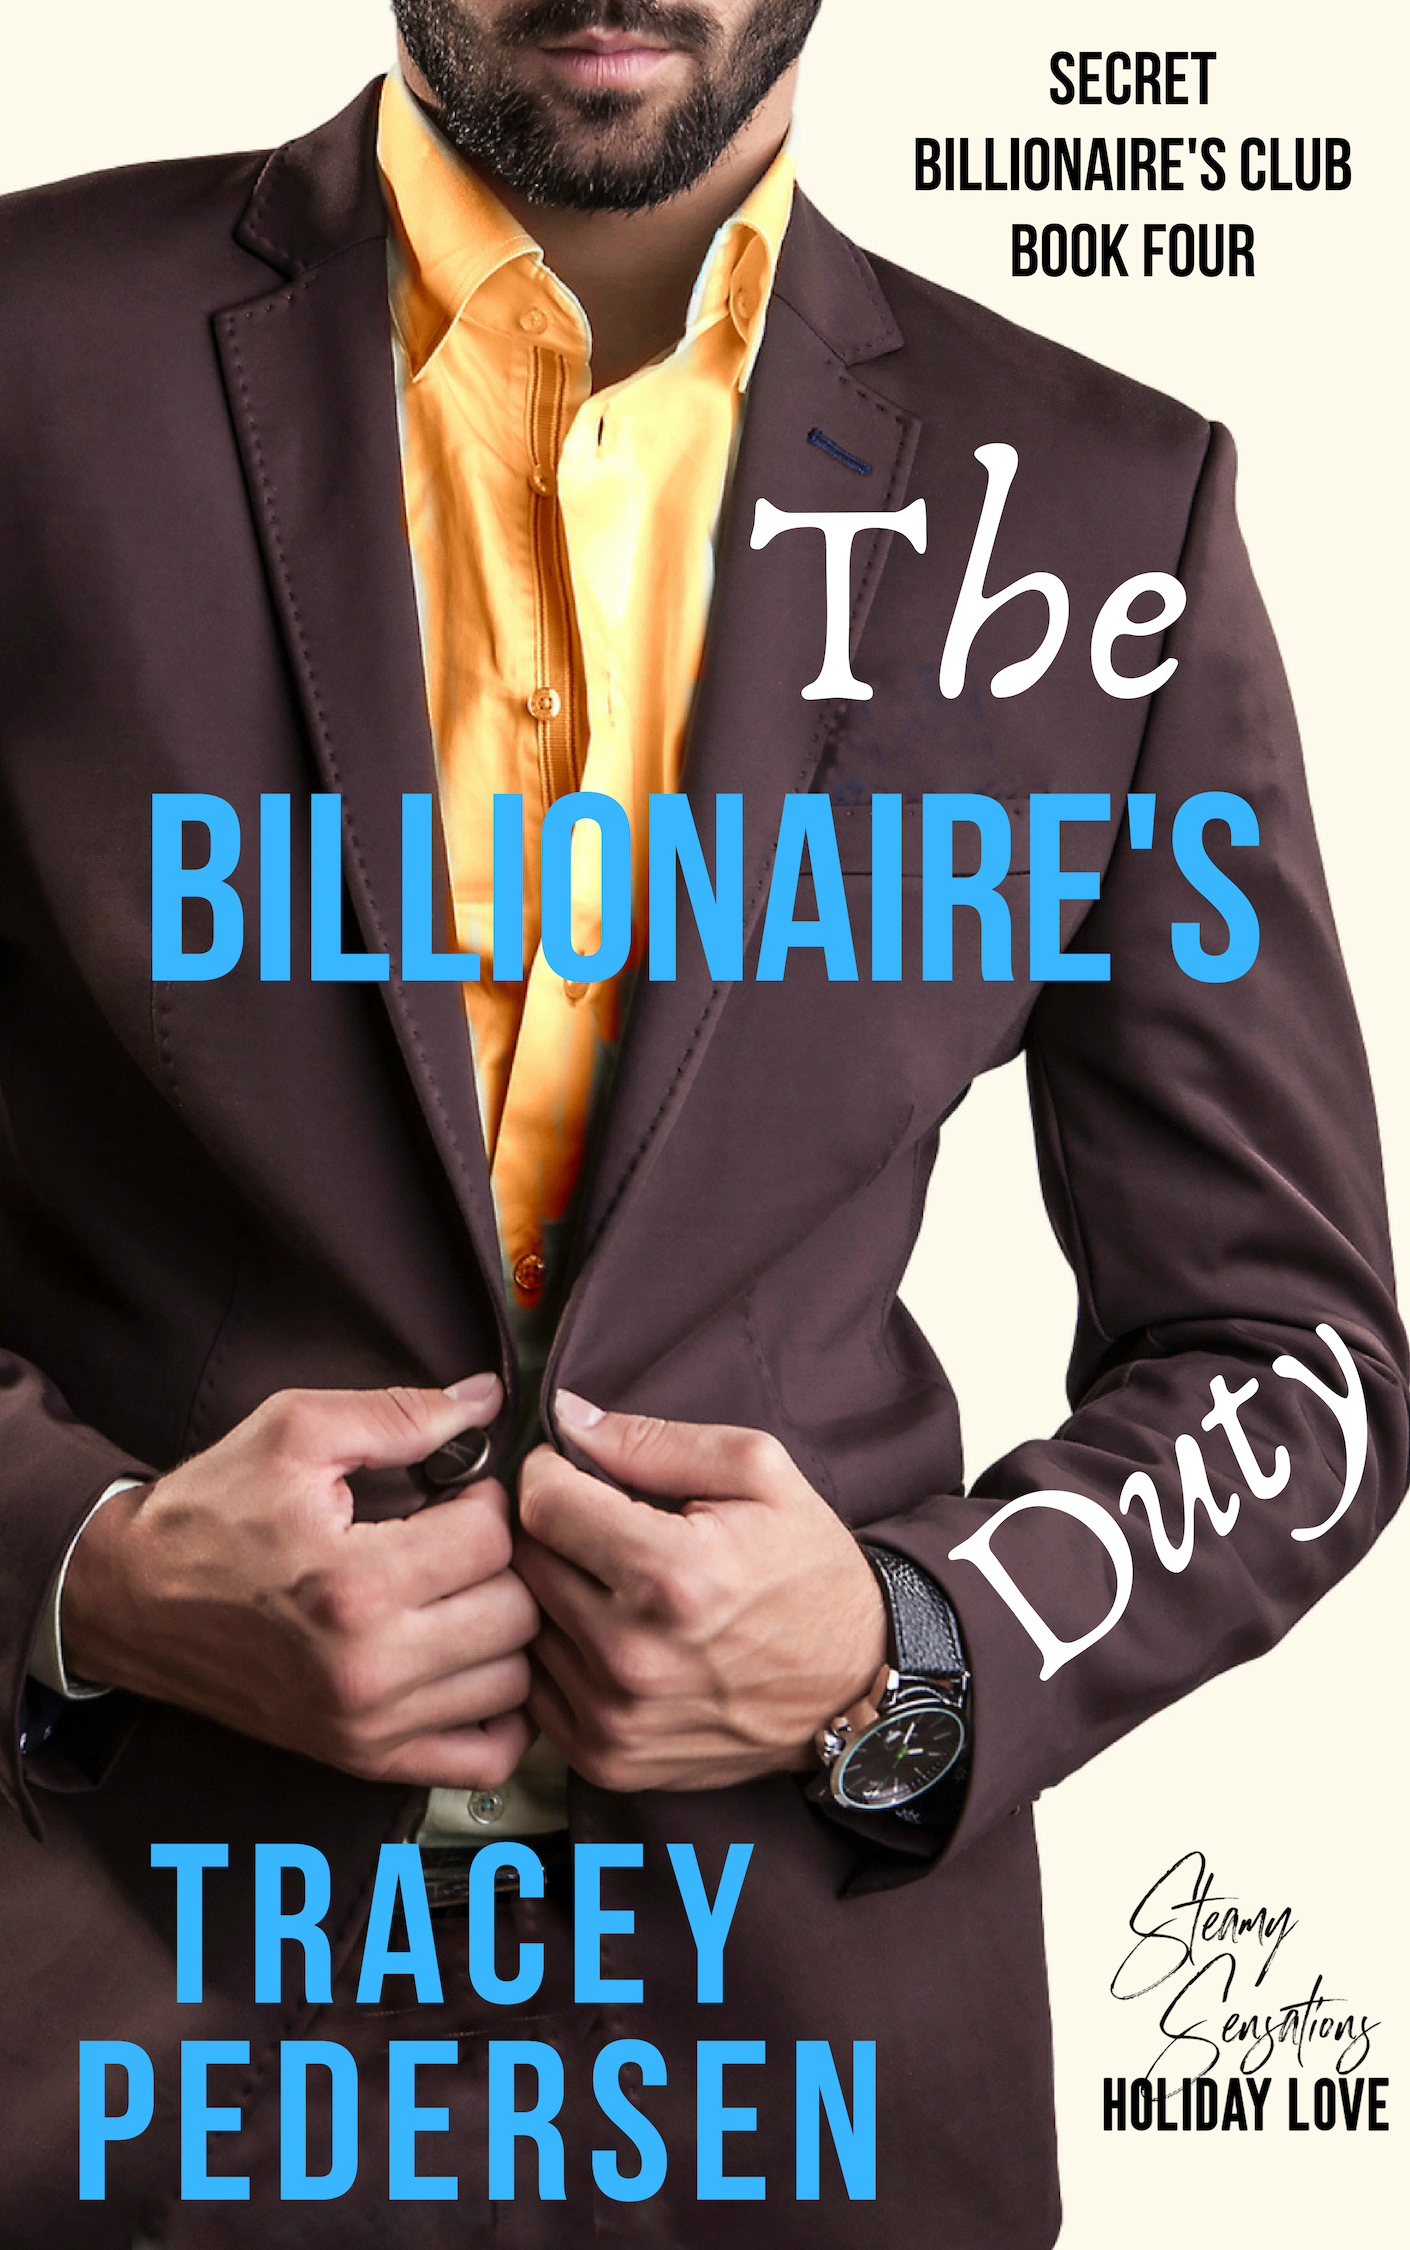 Secret Billionaire's Club Covers